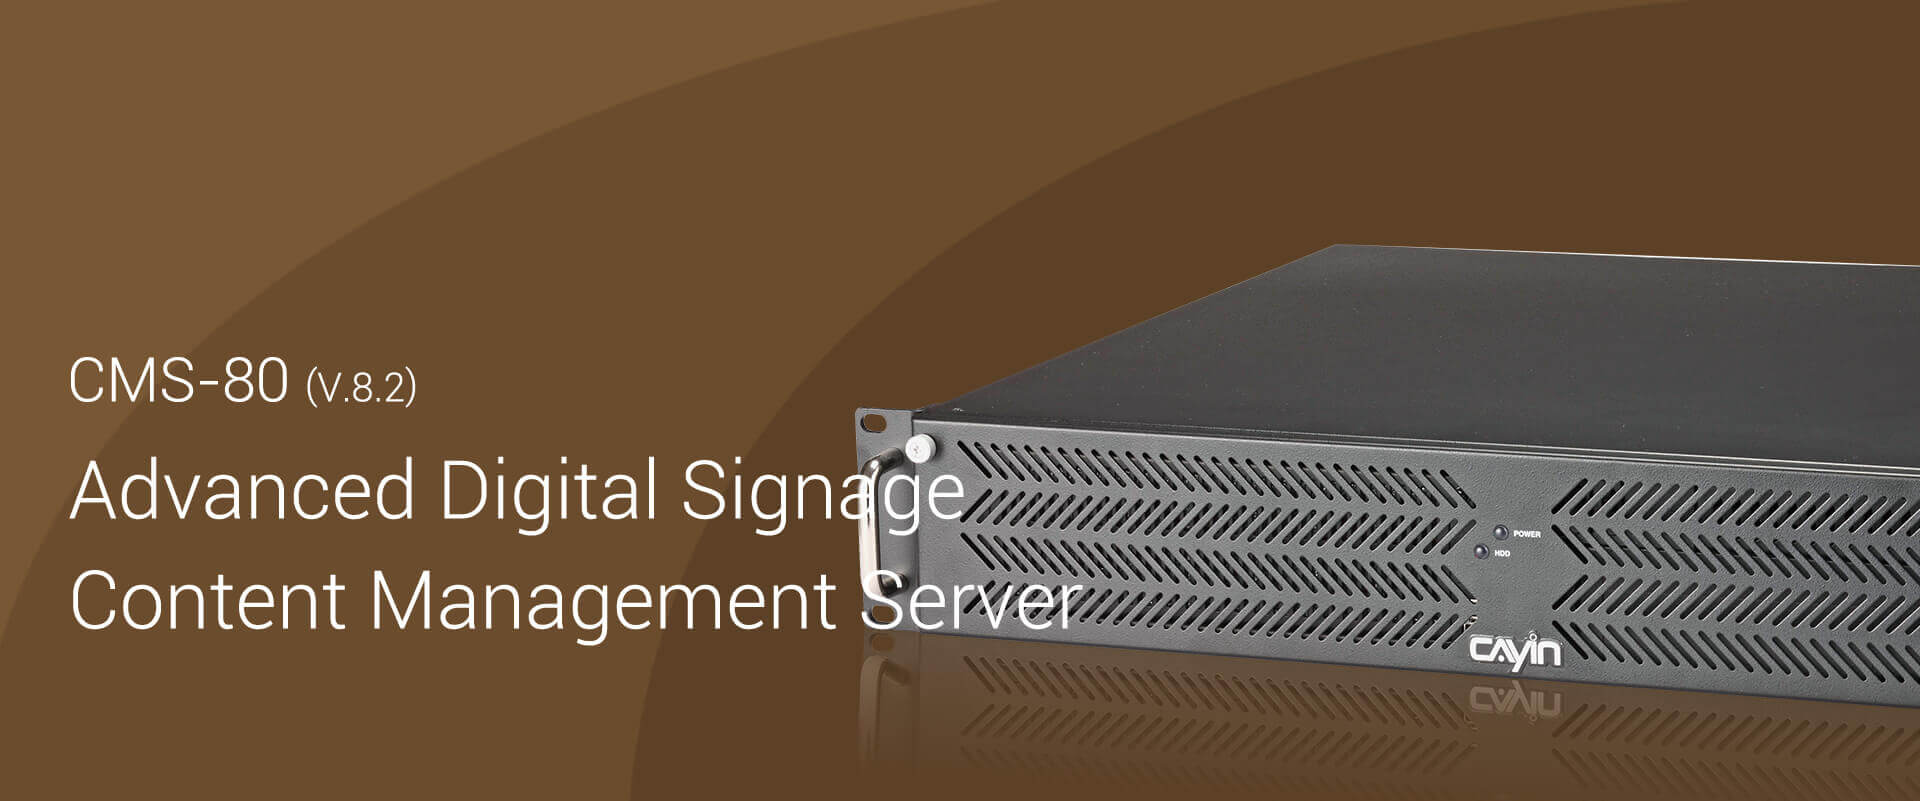 CMS-80 (v.8.2) Entry-Level Digital Signage Content Management Server